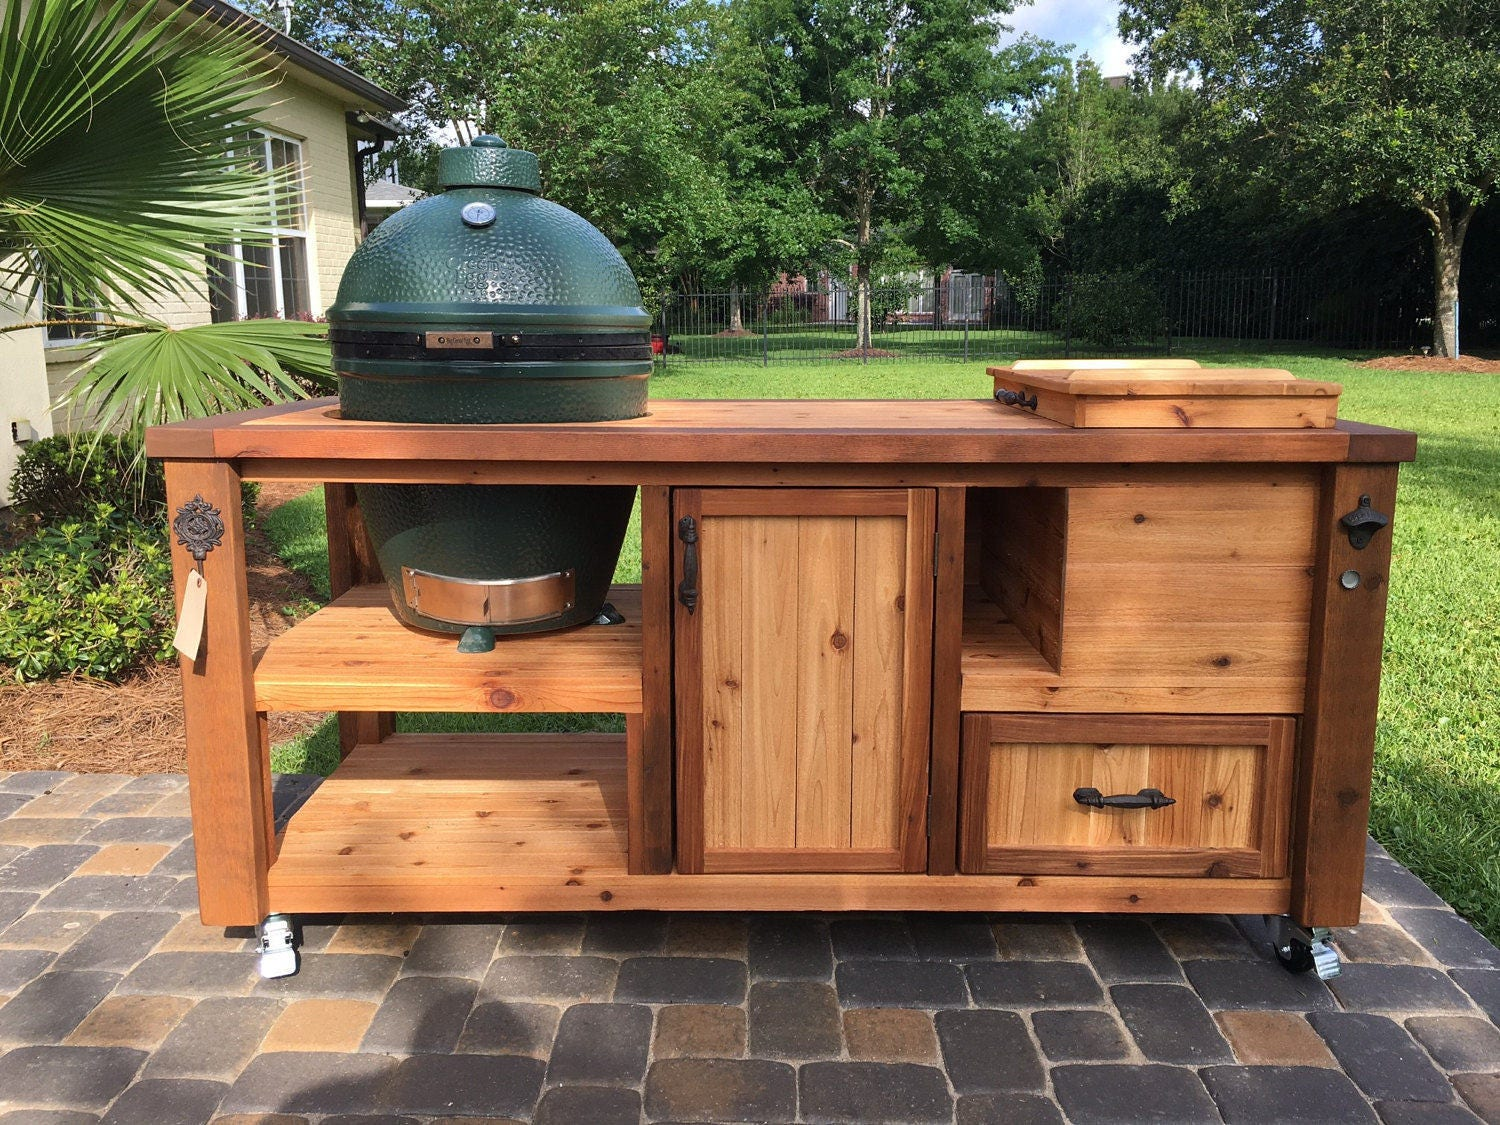 Kitchen Island Bench For Sale Custom Grill Table Or Grill Cart For Big Green Egg Kamado